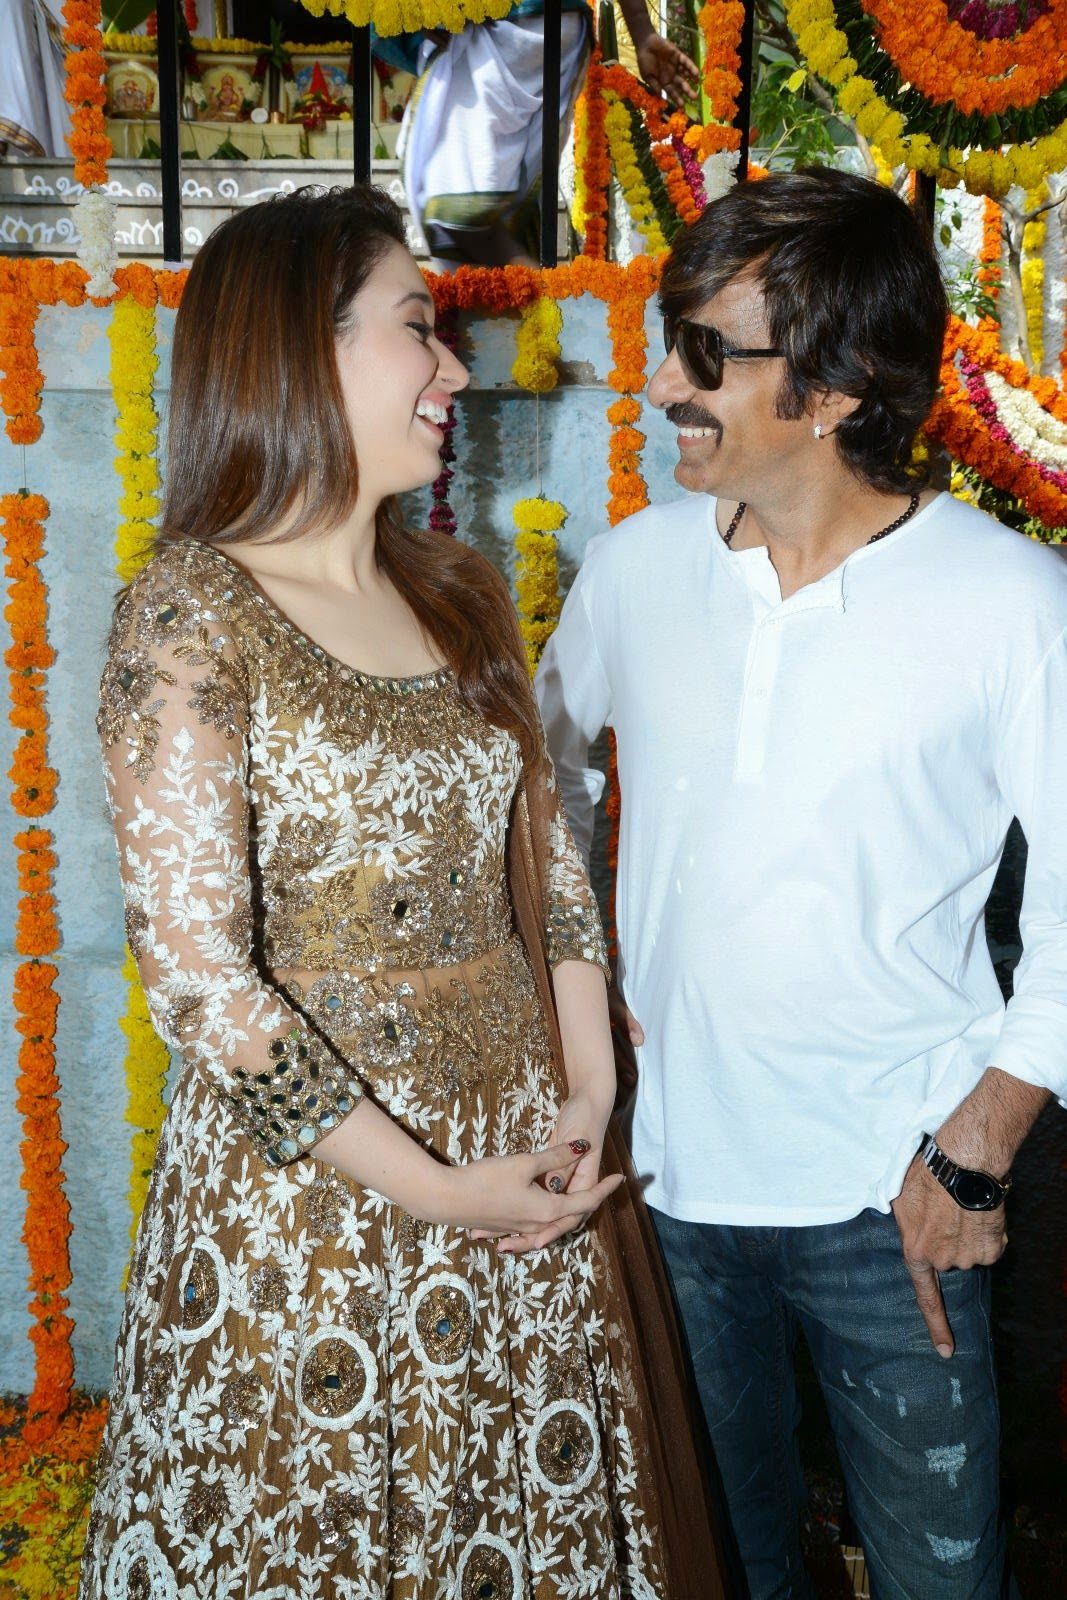 bengal tiger 2015 telugu film ravi teja,tamannah new movie